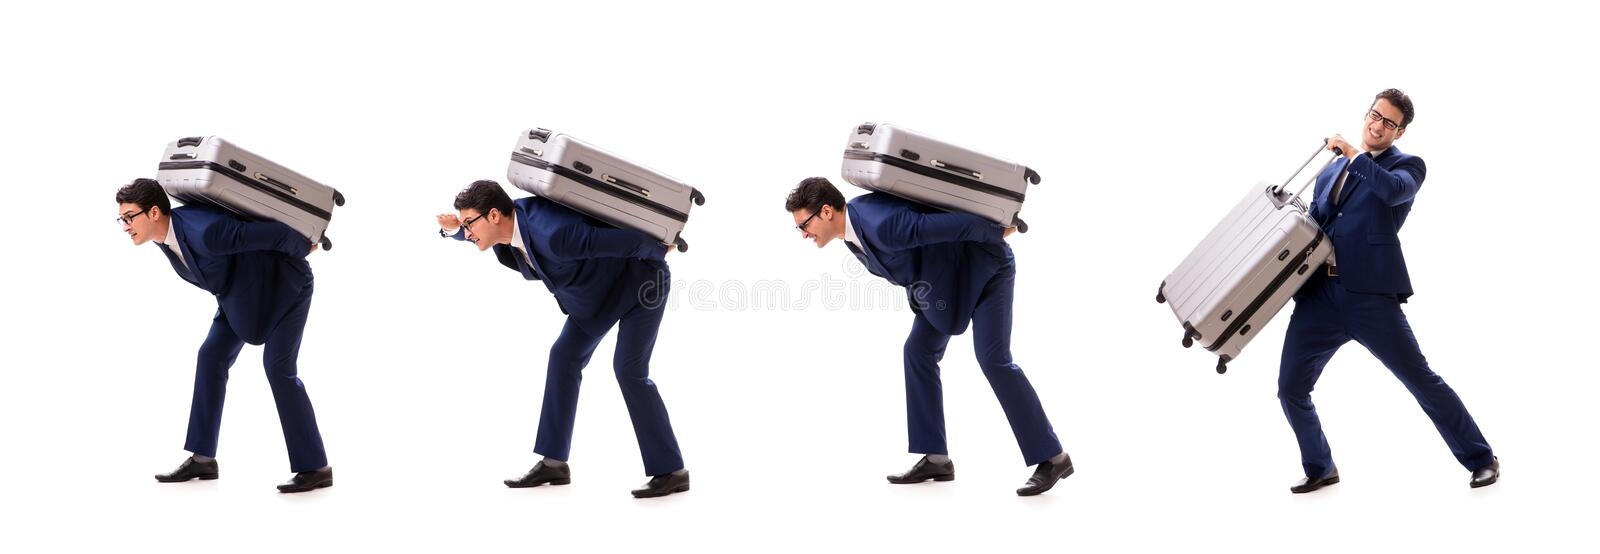 The businessman facing excess charges due to heavy suitcase. Businessman facing excess charges due to heavy suitcase royalty free stock photography